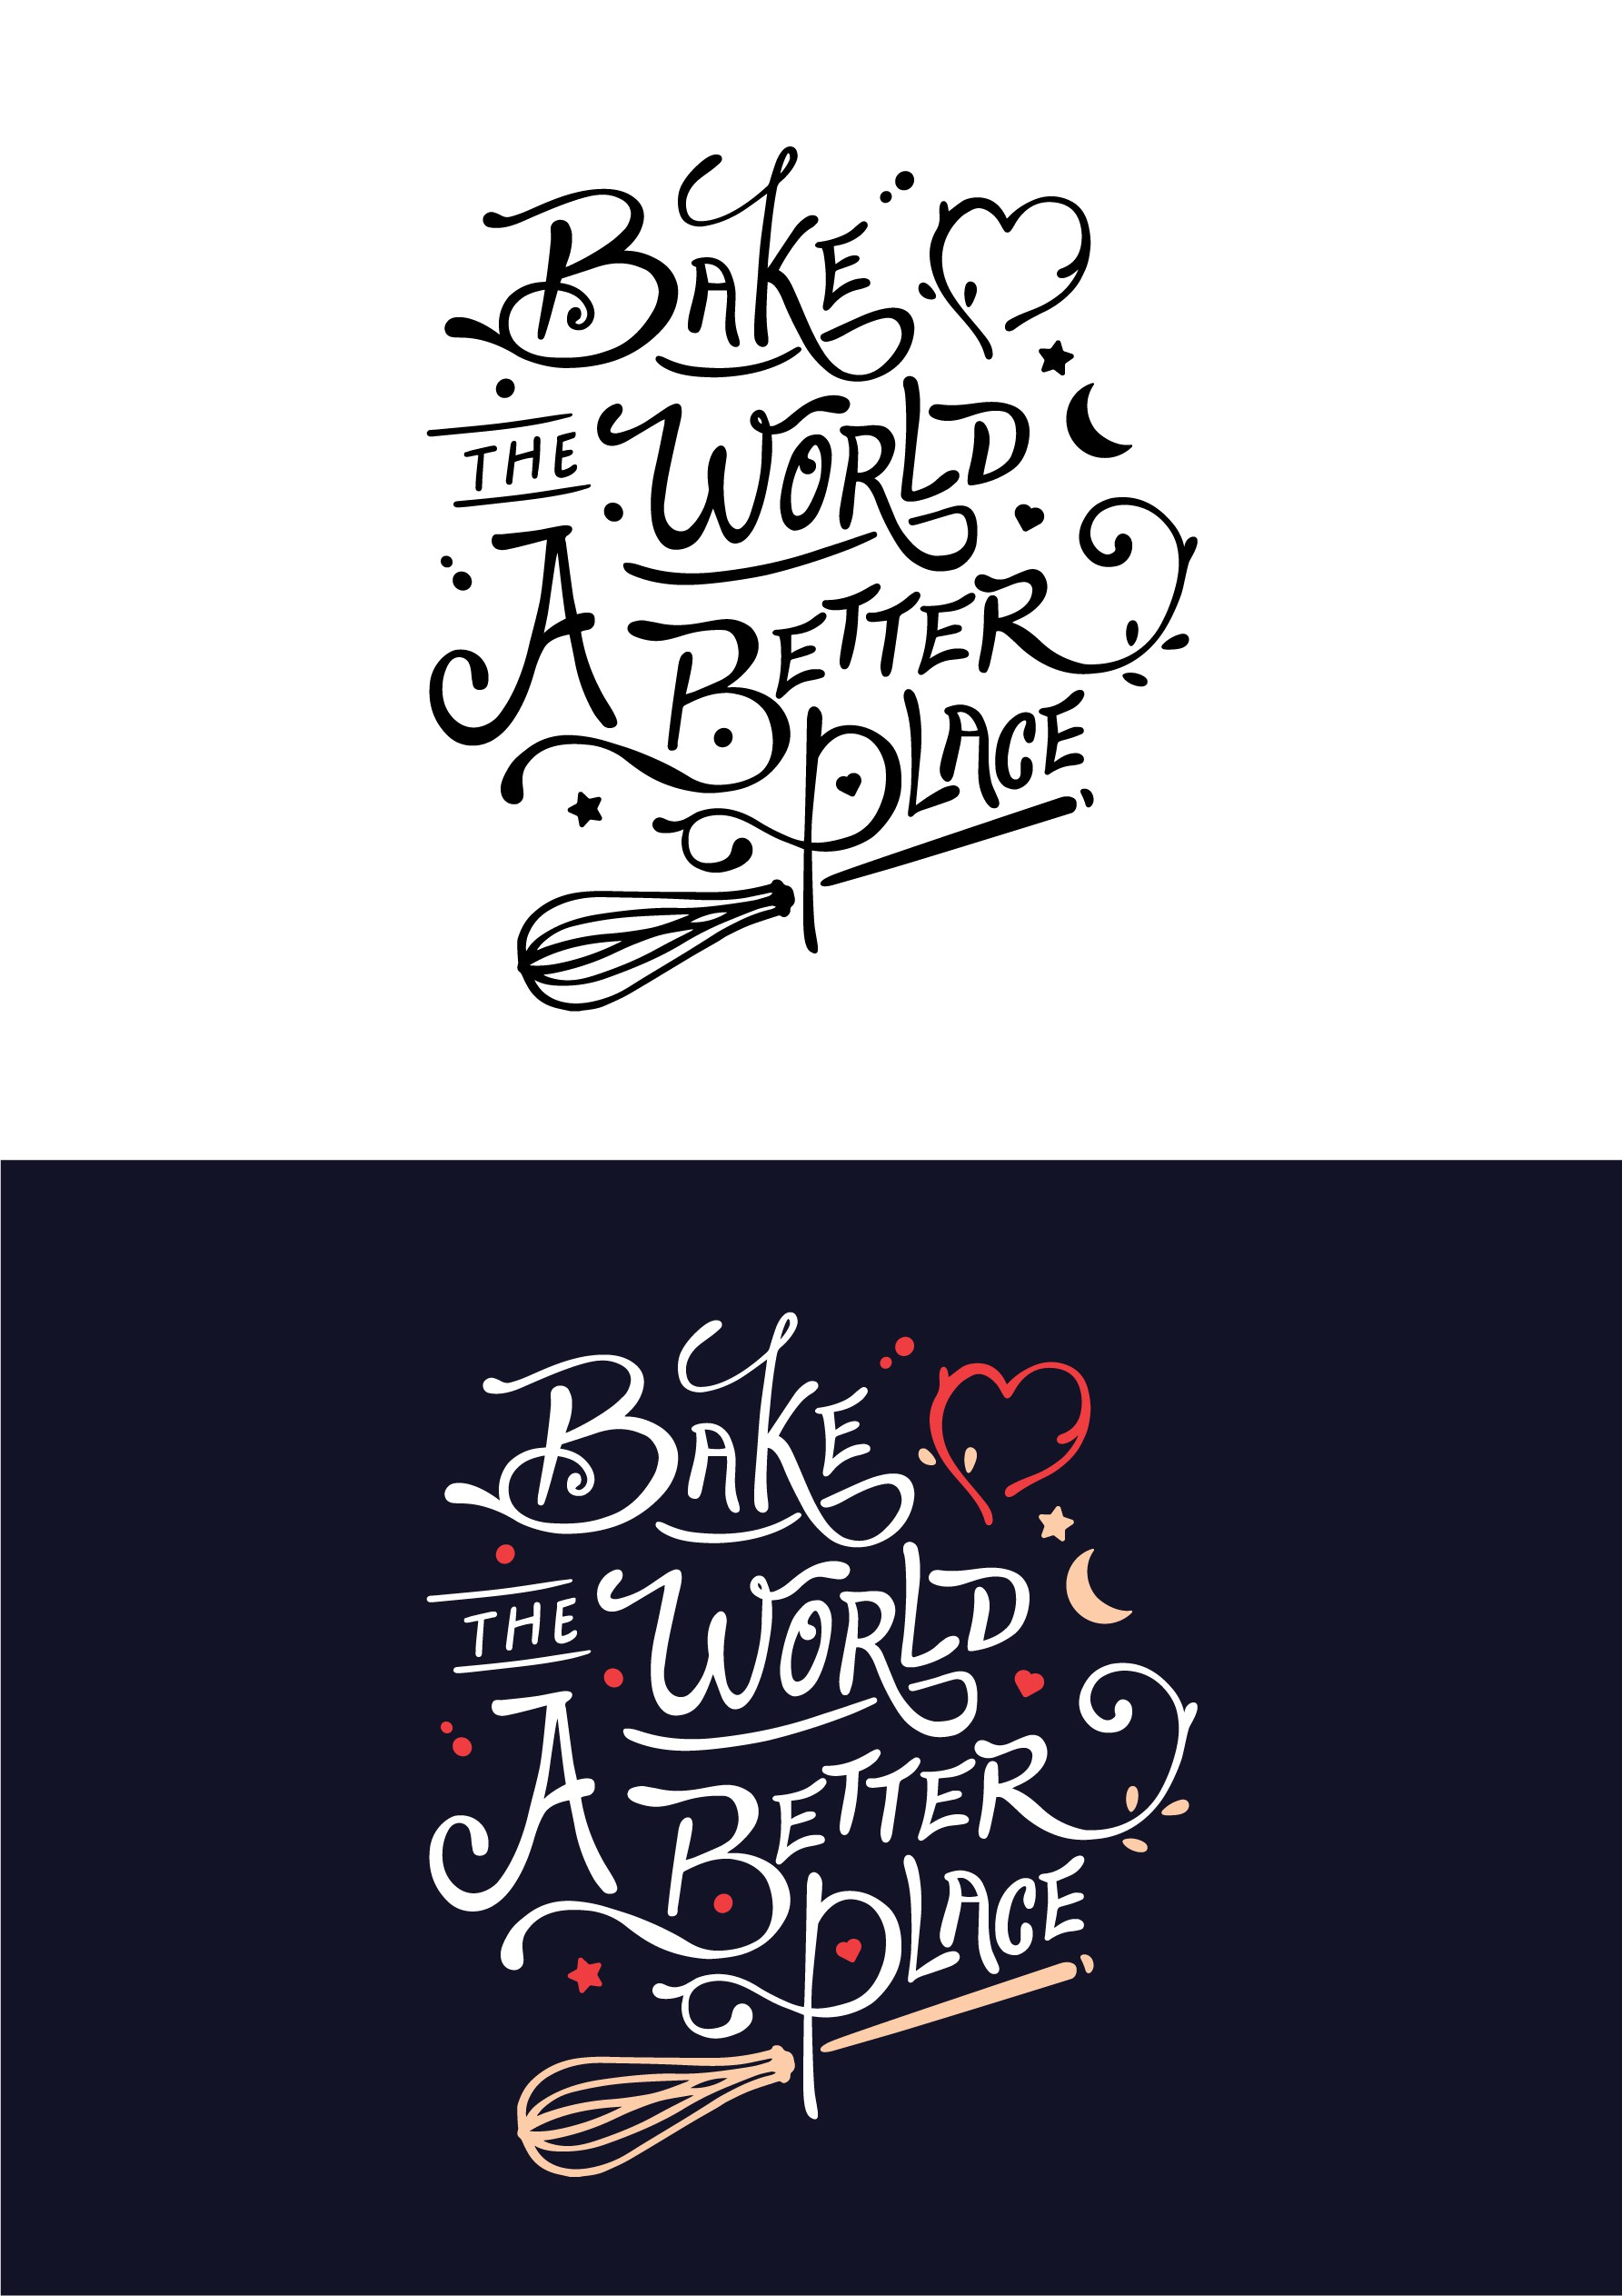 Cute Apron Hand Lettering & Illustration Design to Appeal to Women